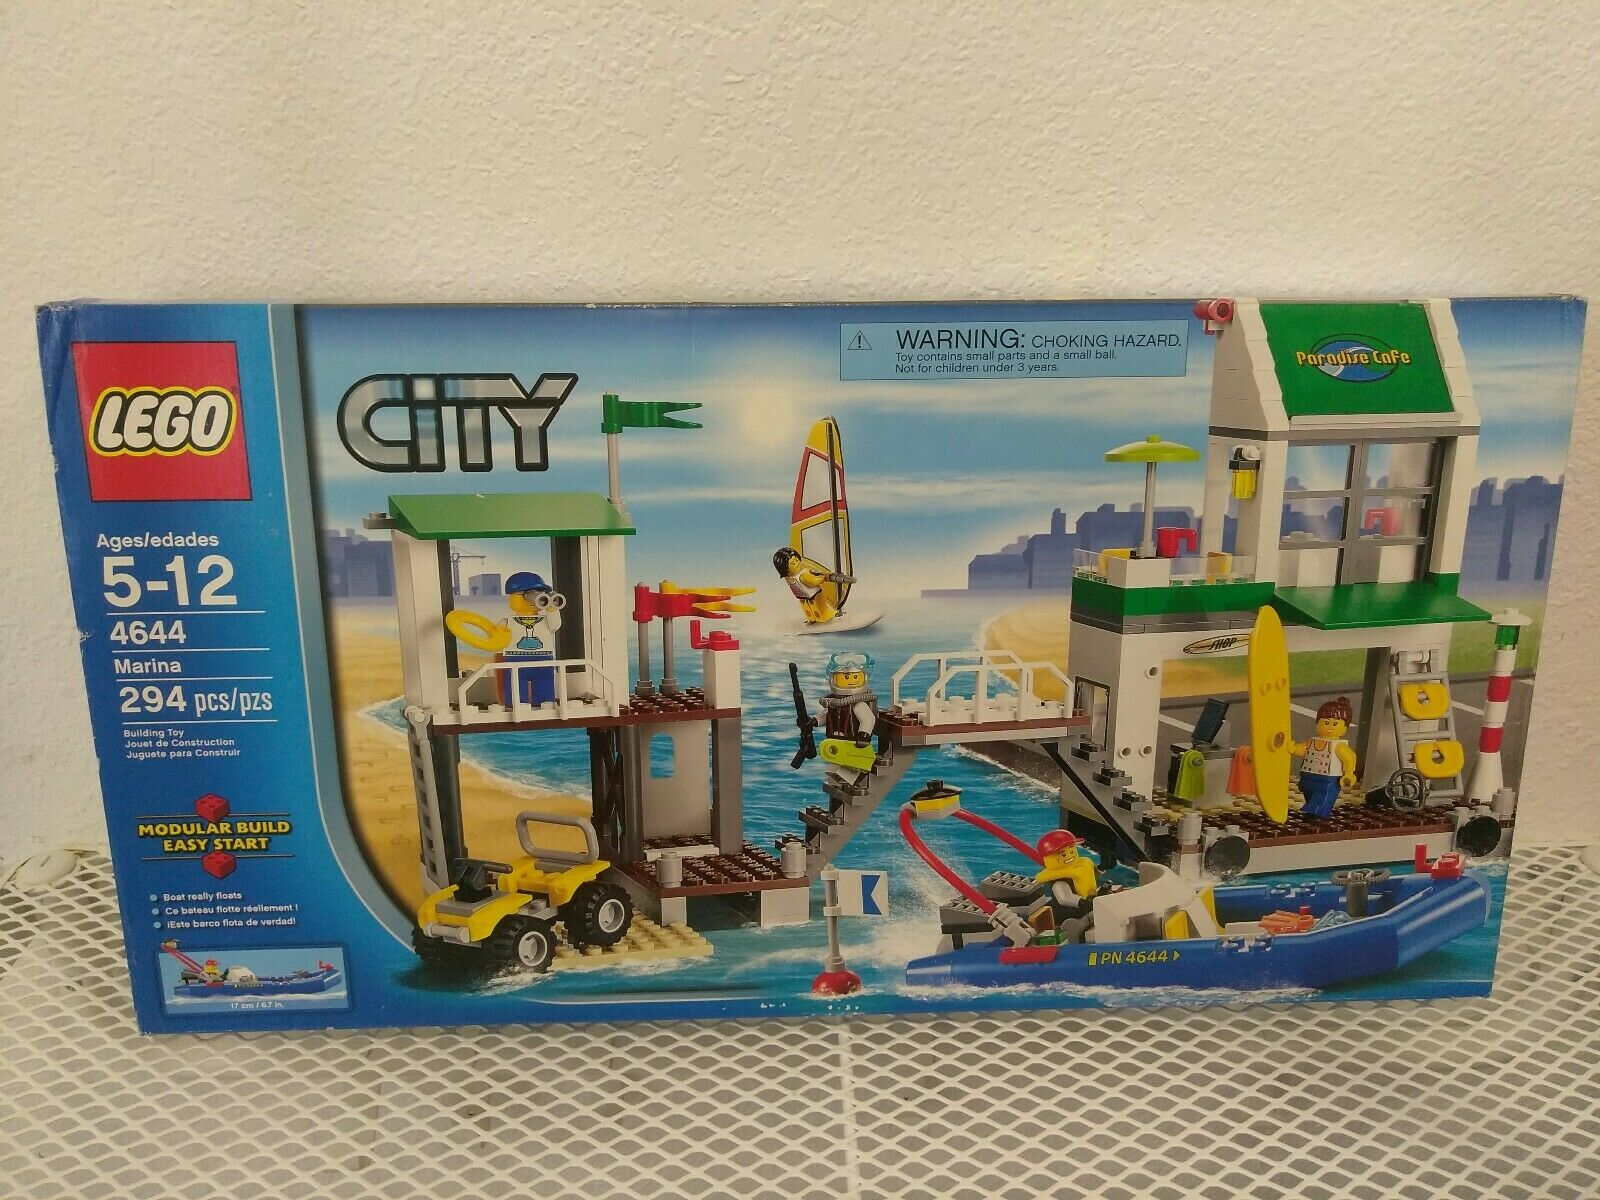 Lego City Harbor Marina 4644 Kit de construcción